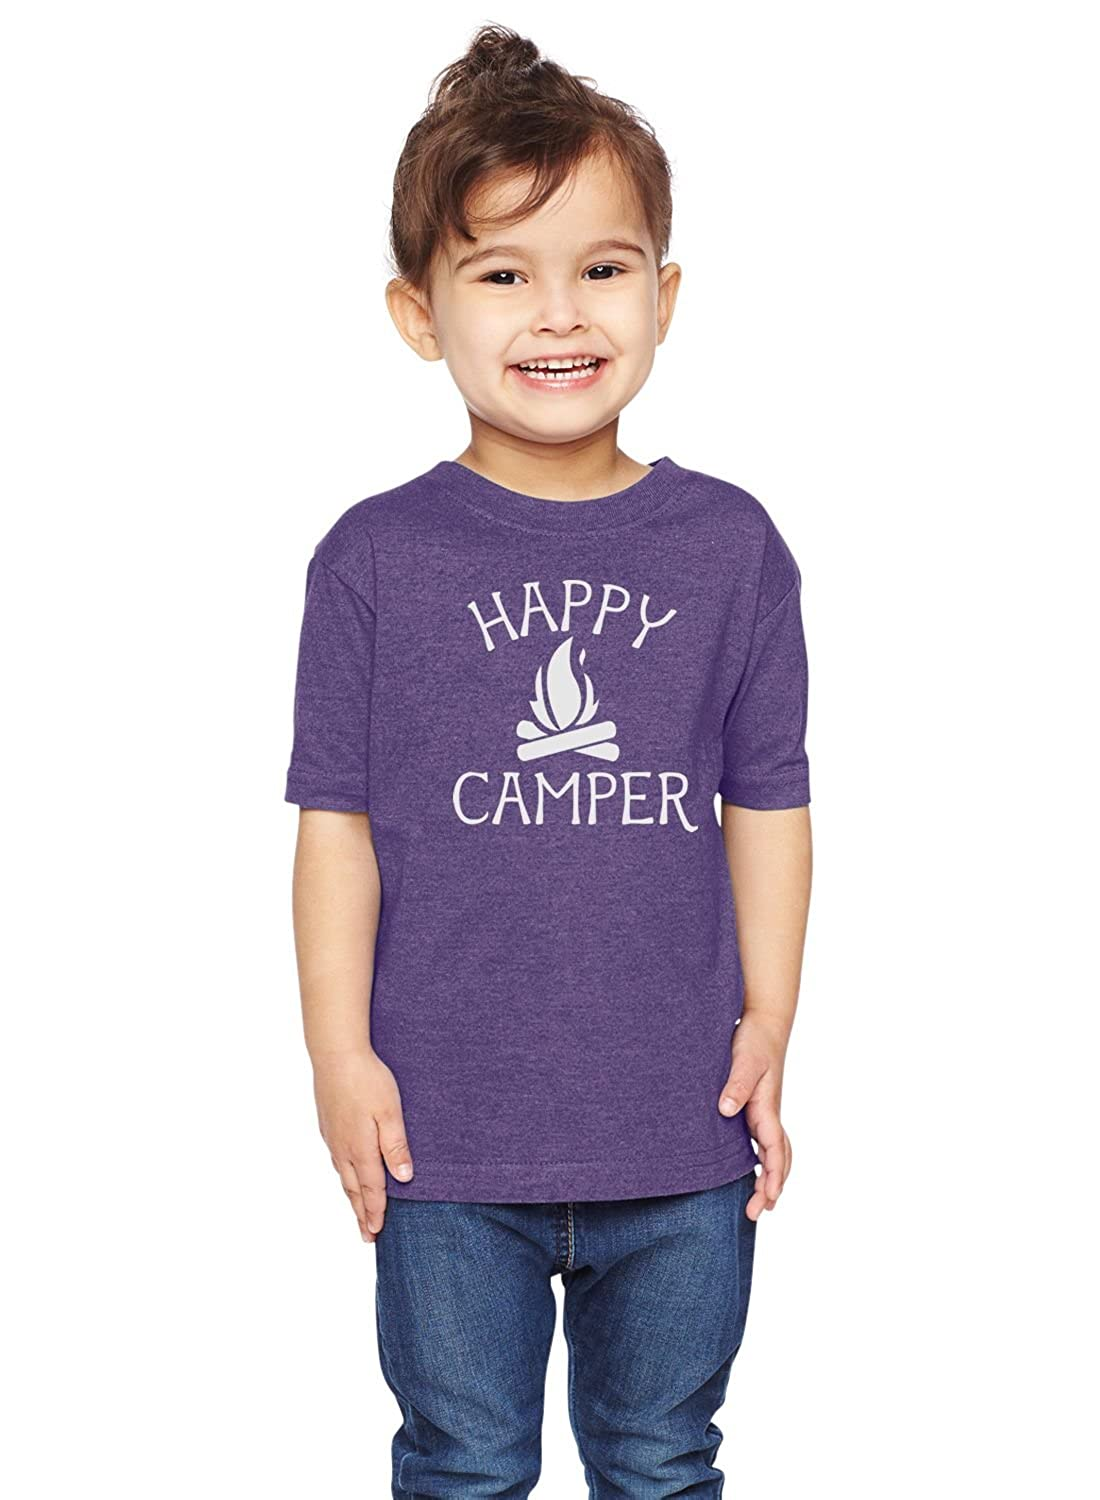 Brain Juice Tees Happy Camper Unisex Toddler Shirt